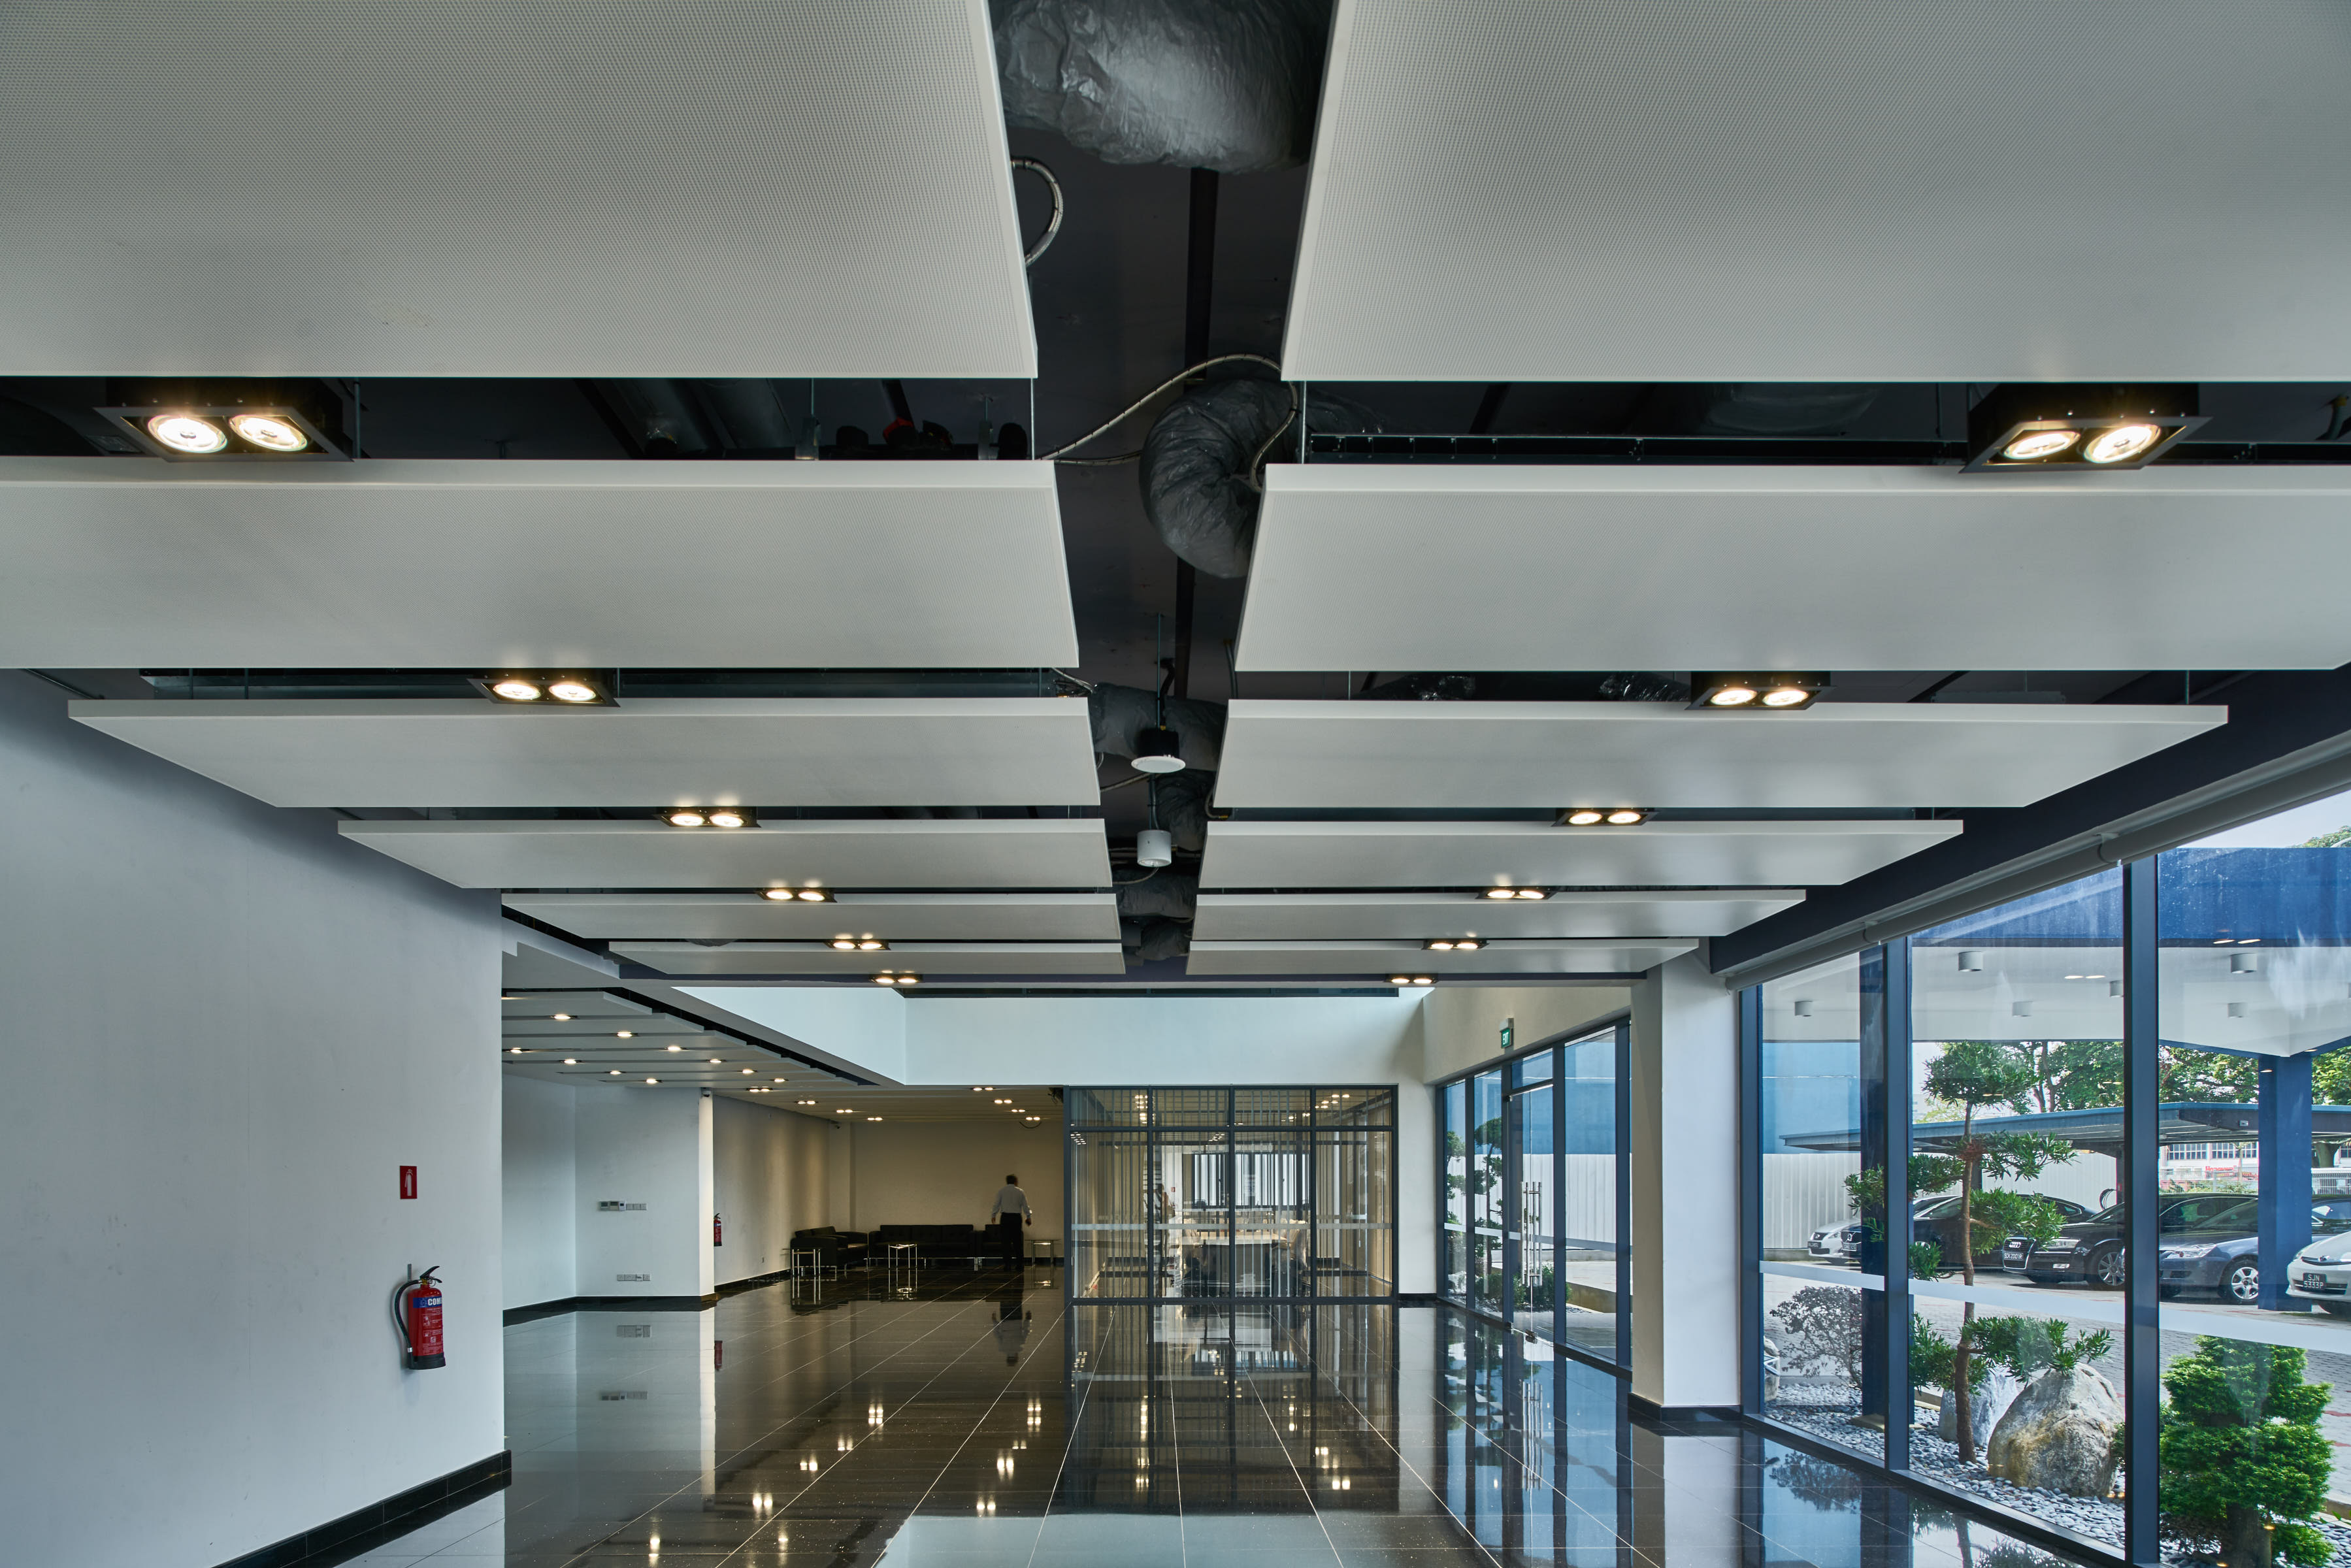 Multifunction Exposed Chilled Ceiling Connols Air Pte Ltd